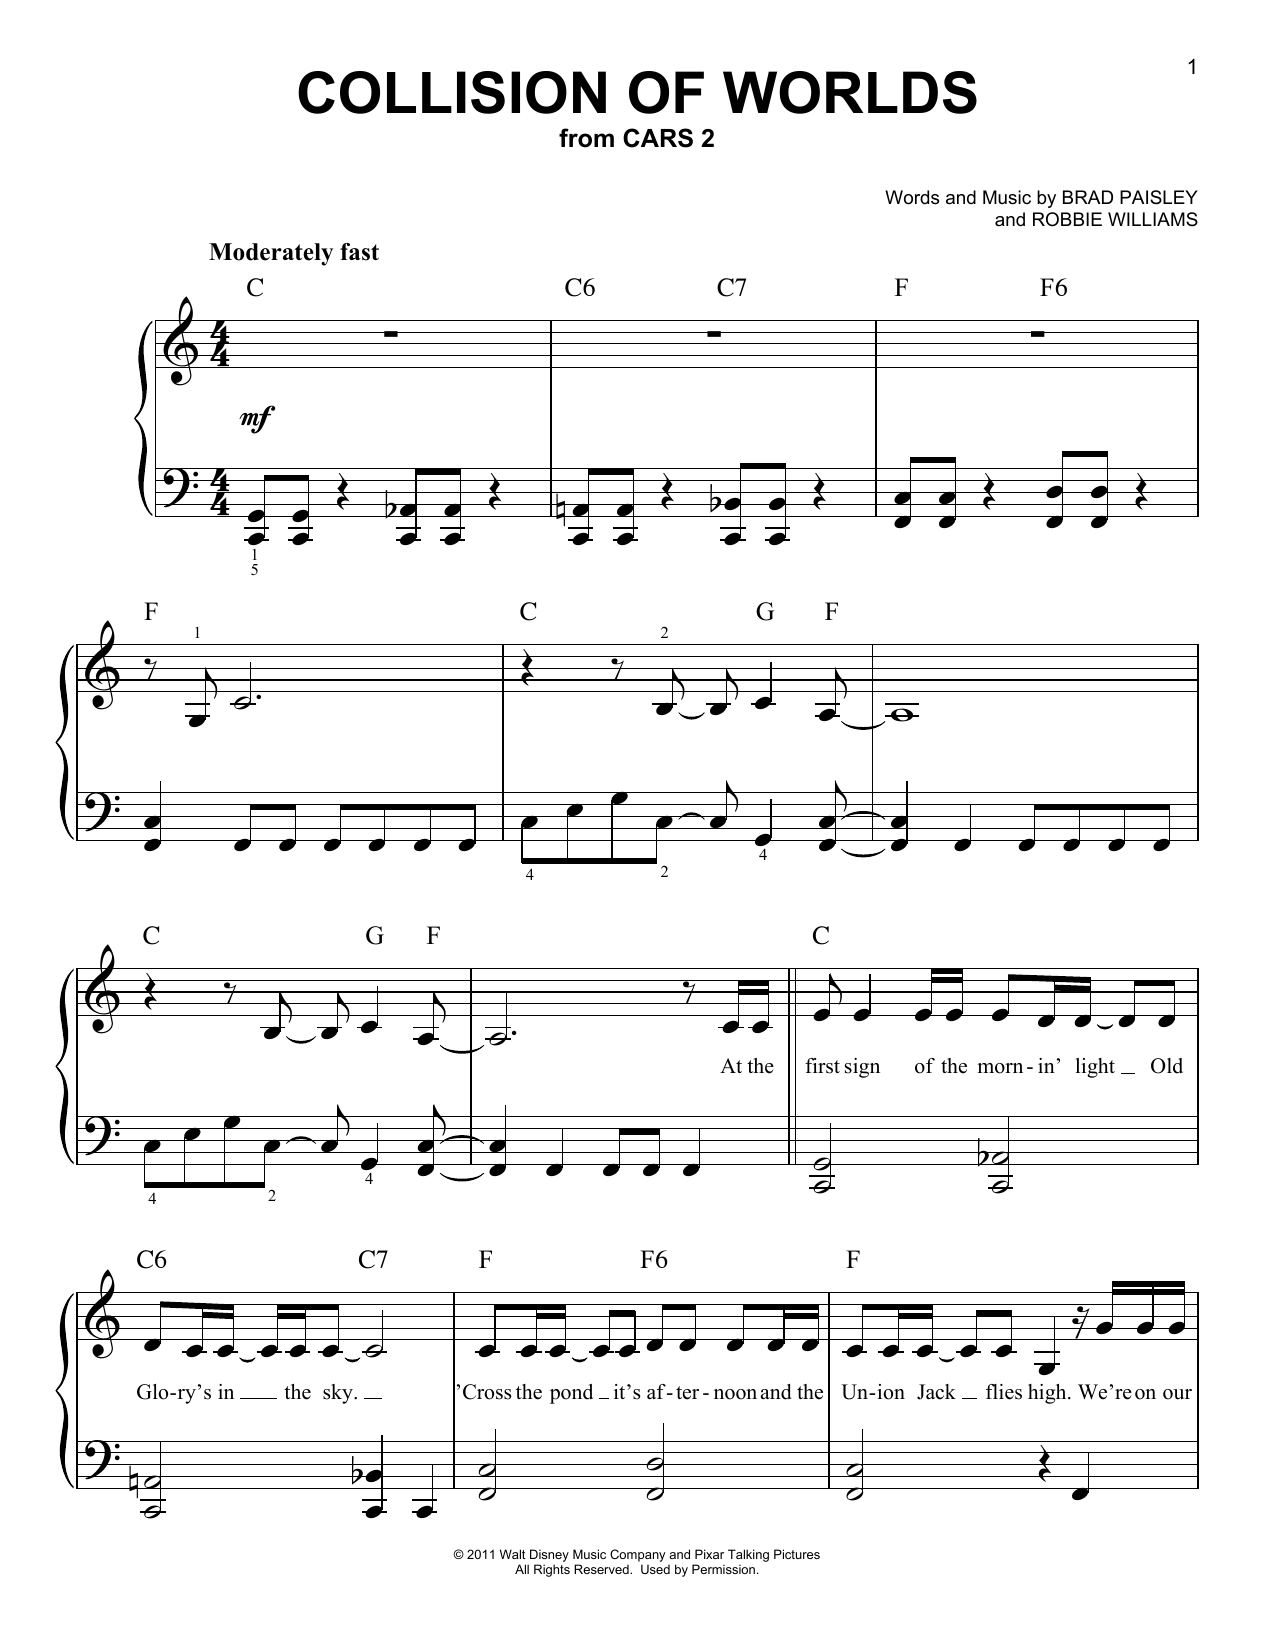 Brad Paisley Collision Of Worlds sheet music notes and chords. Download Printable PDF.